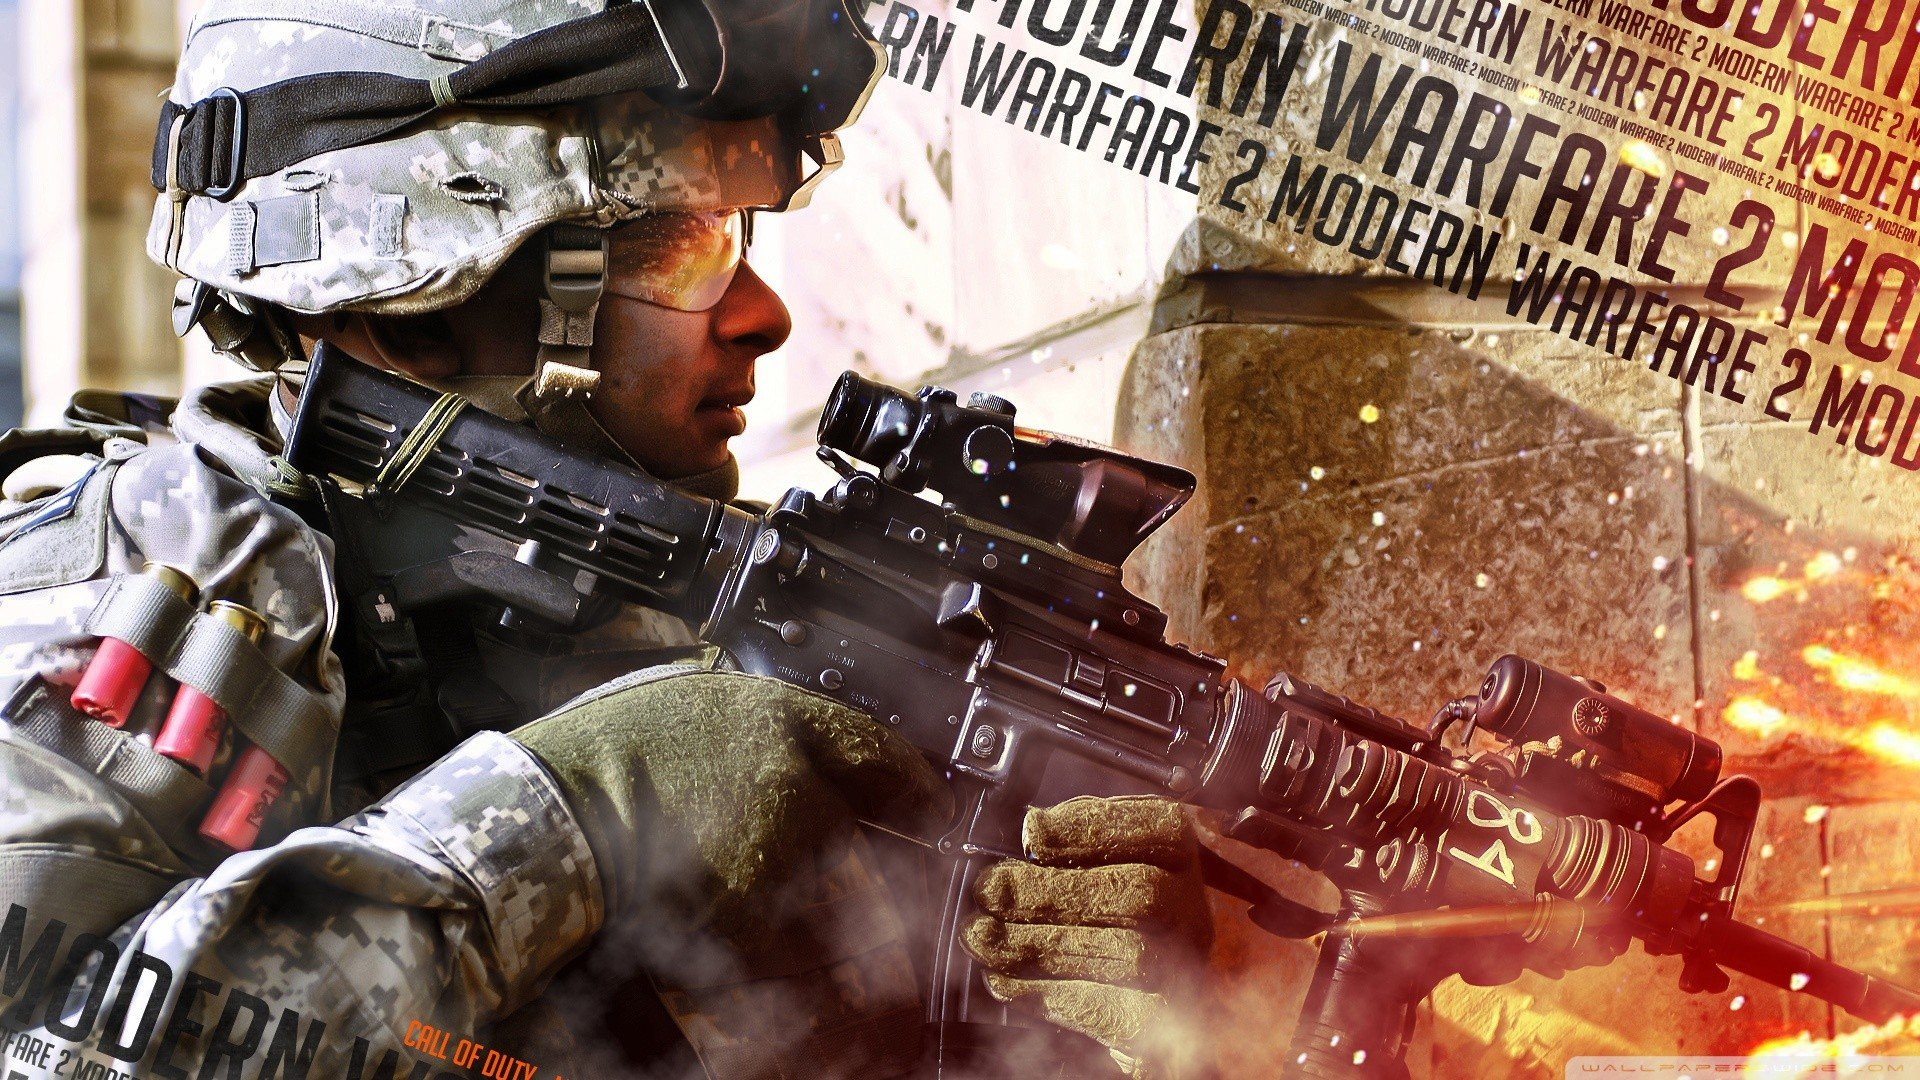 Download full hd 1920x1080 Call Of Duty: Modern Warfare 2 (MW2) desktop wallpaper ID:326509 for free